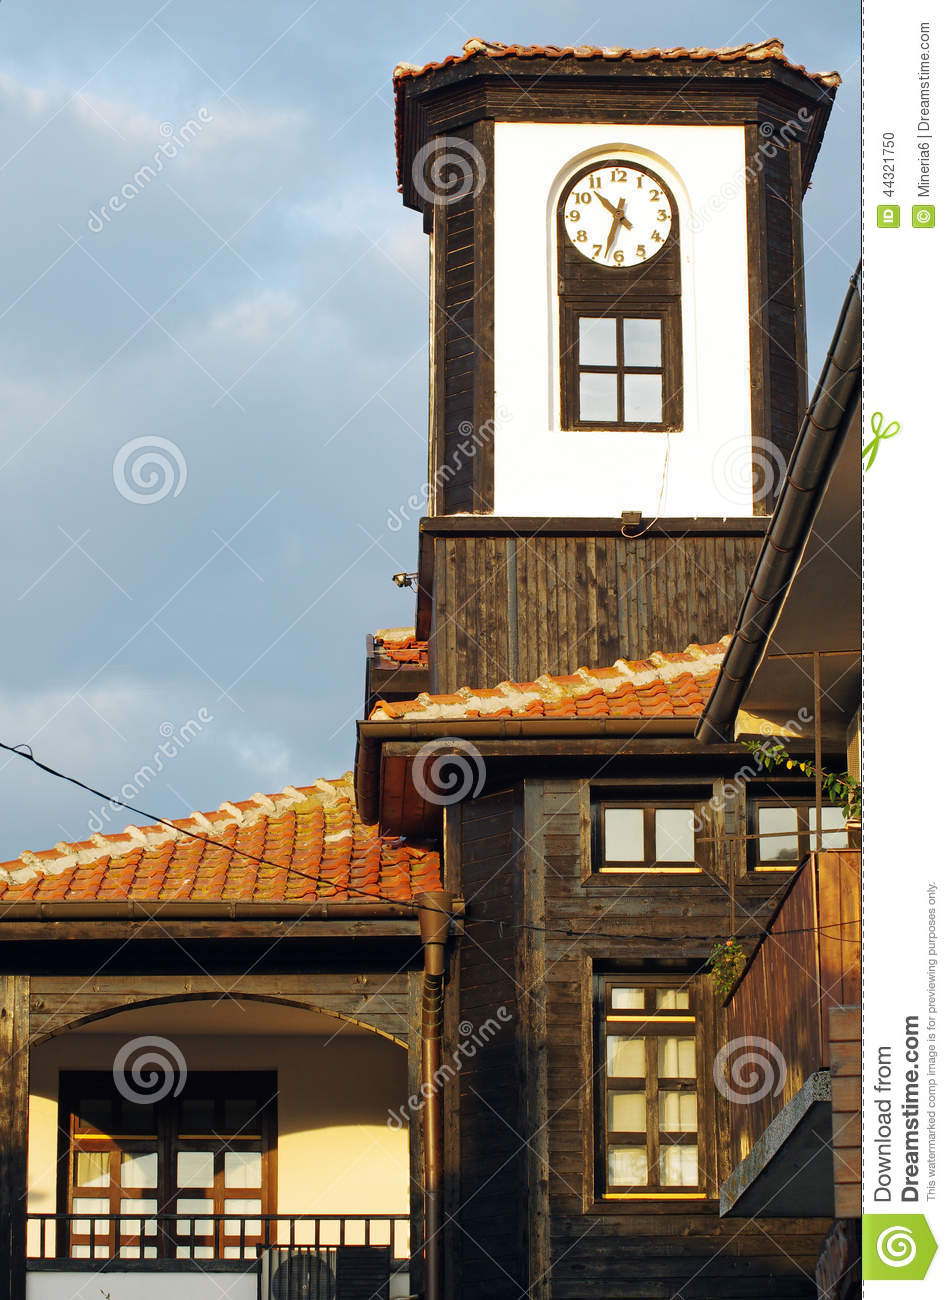 Old Wooden Clock Tower Stock Photo Image 44321750